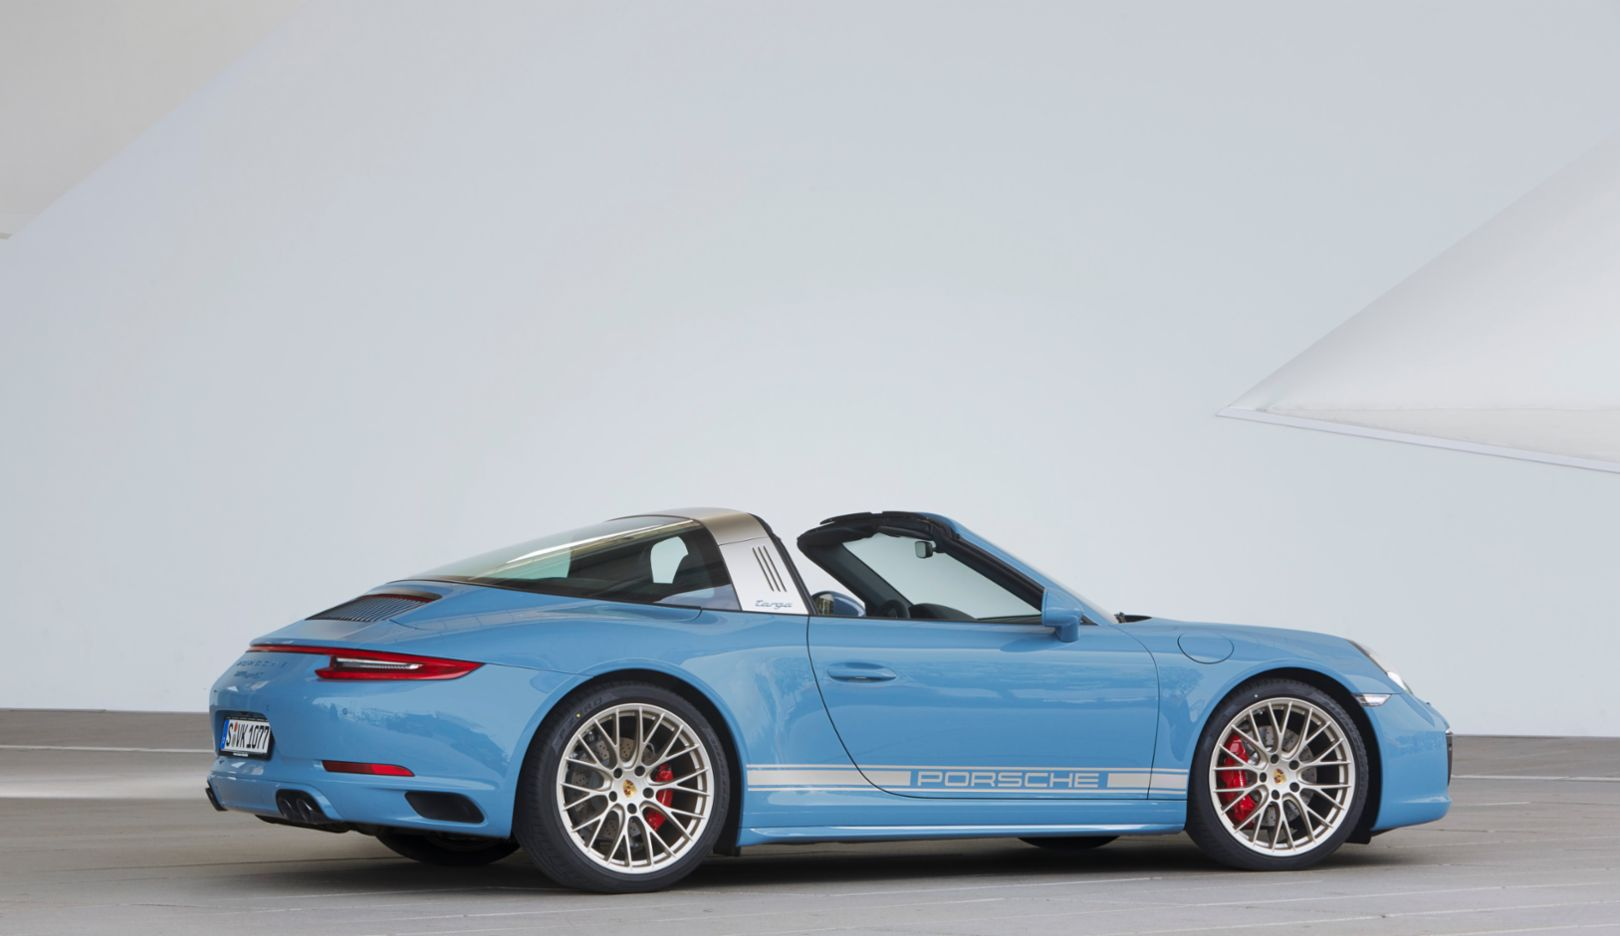 New Porsche 911 Targa 4s Exclusive Design Edition